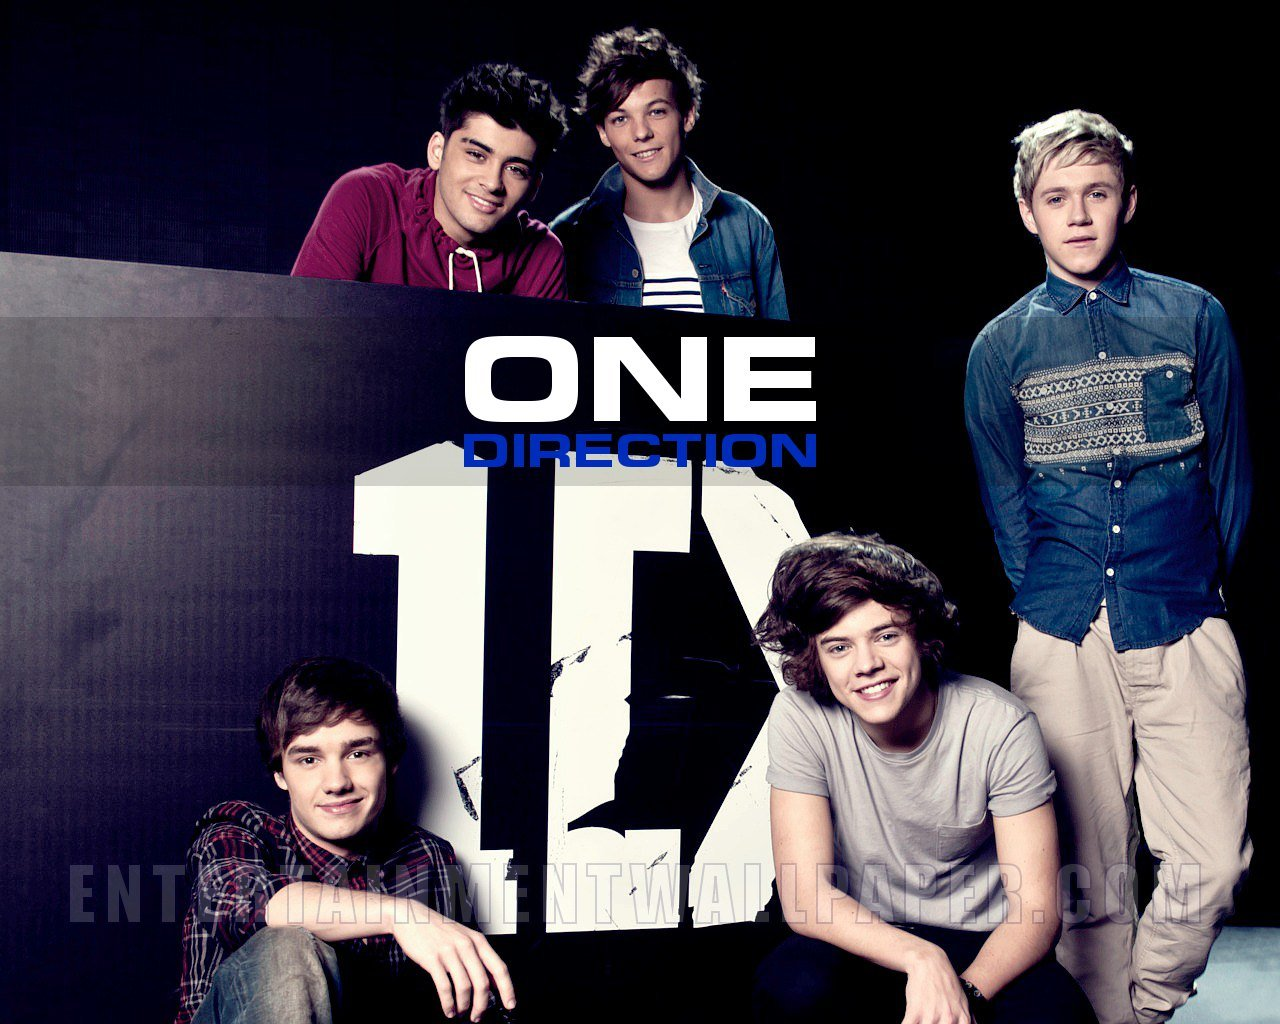 One Direction Wallpaper one direction 34596452 1280 1024jpg 1280x1024